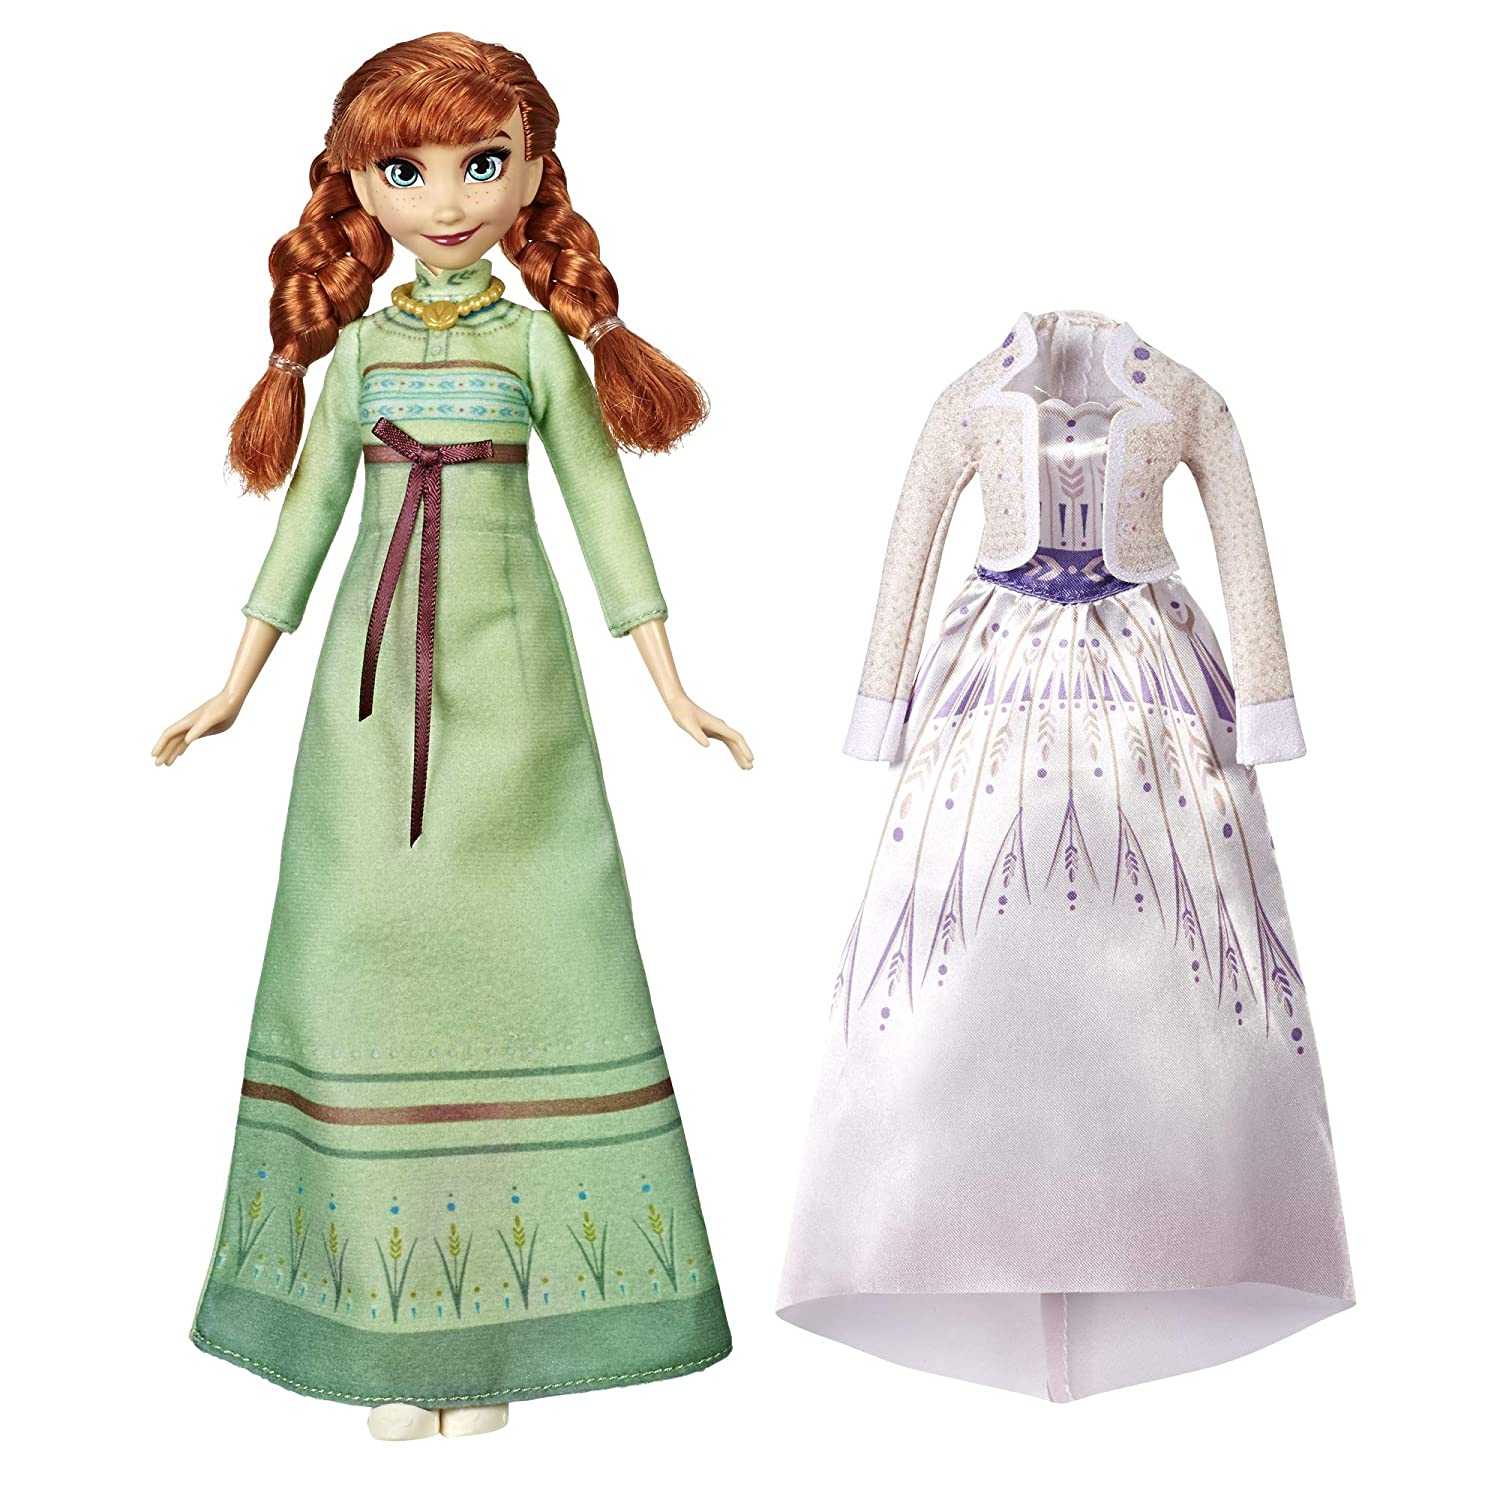 Disney Frozen Arendelle Fashions Anna Fashion Doll with 2 Outfits, Green Nightgown & White Dress Inspired by the Frozen 2 Movie - Toy For Kids 3 Years ...